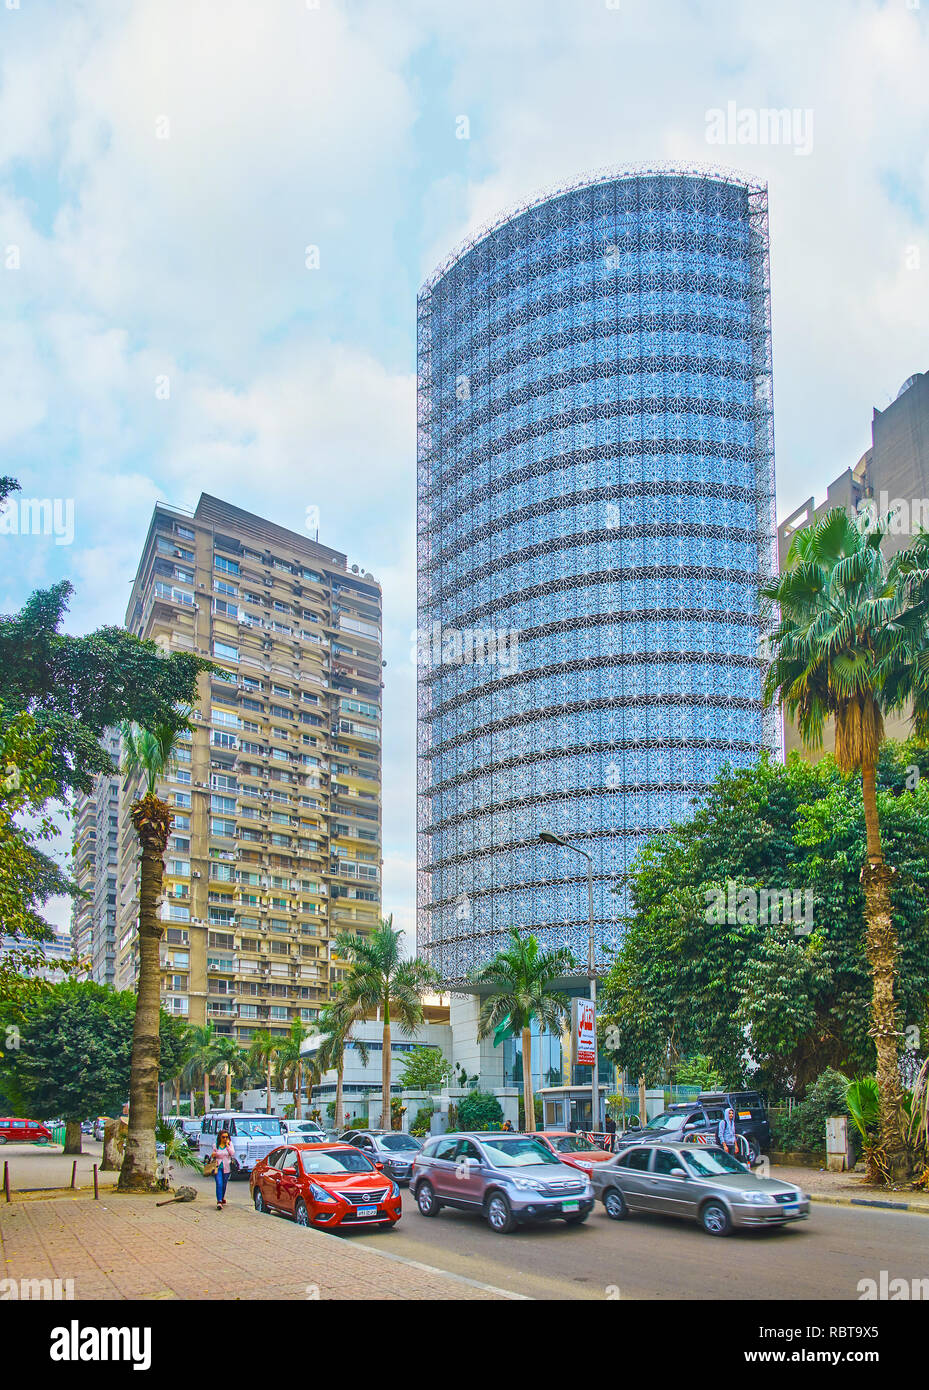 GIZA, EGYPT - DECEMBER 19, 2017: The luxury modern building of the Royal Embassy of Saudi Arabia, located in Al Yaman street adjacent to the Nile rive - Stock Image